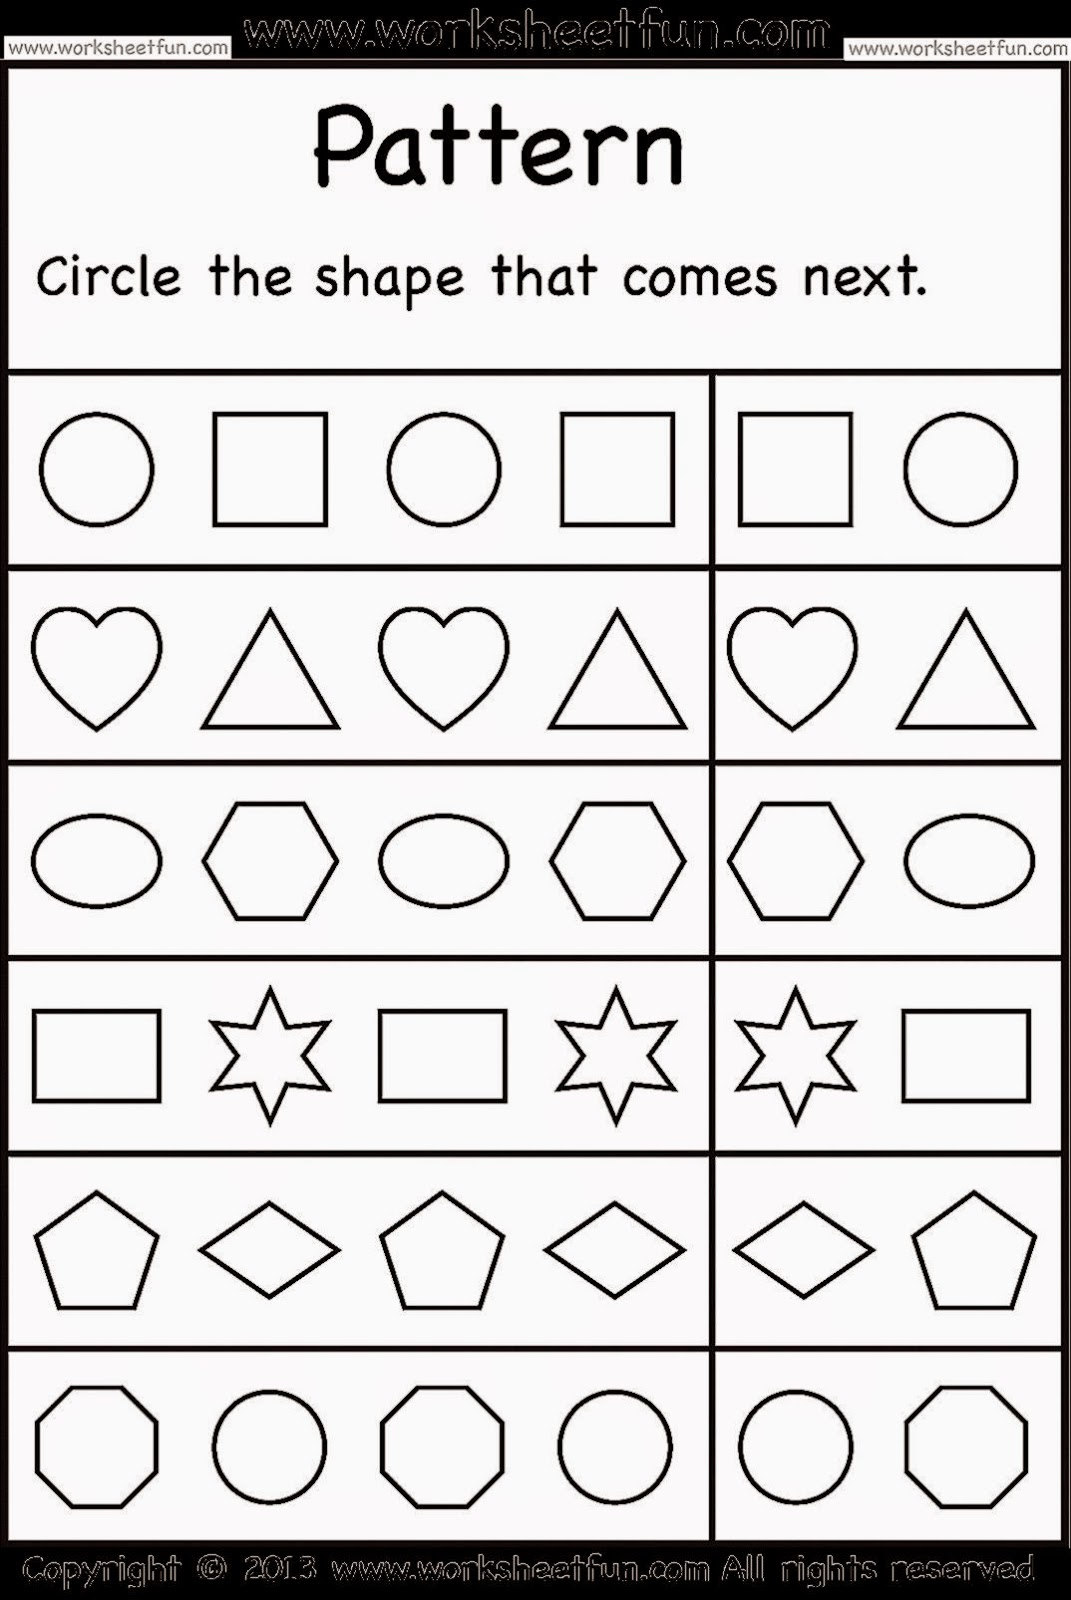 Printables Worksheets Free free downloadable worksheets scalien 8 best images of patterns printable preschool worksheets